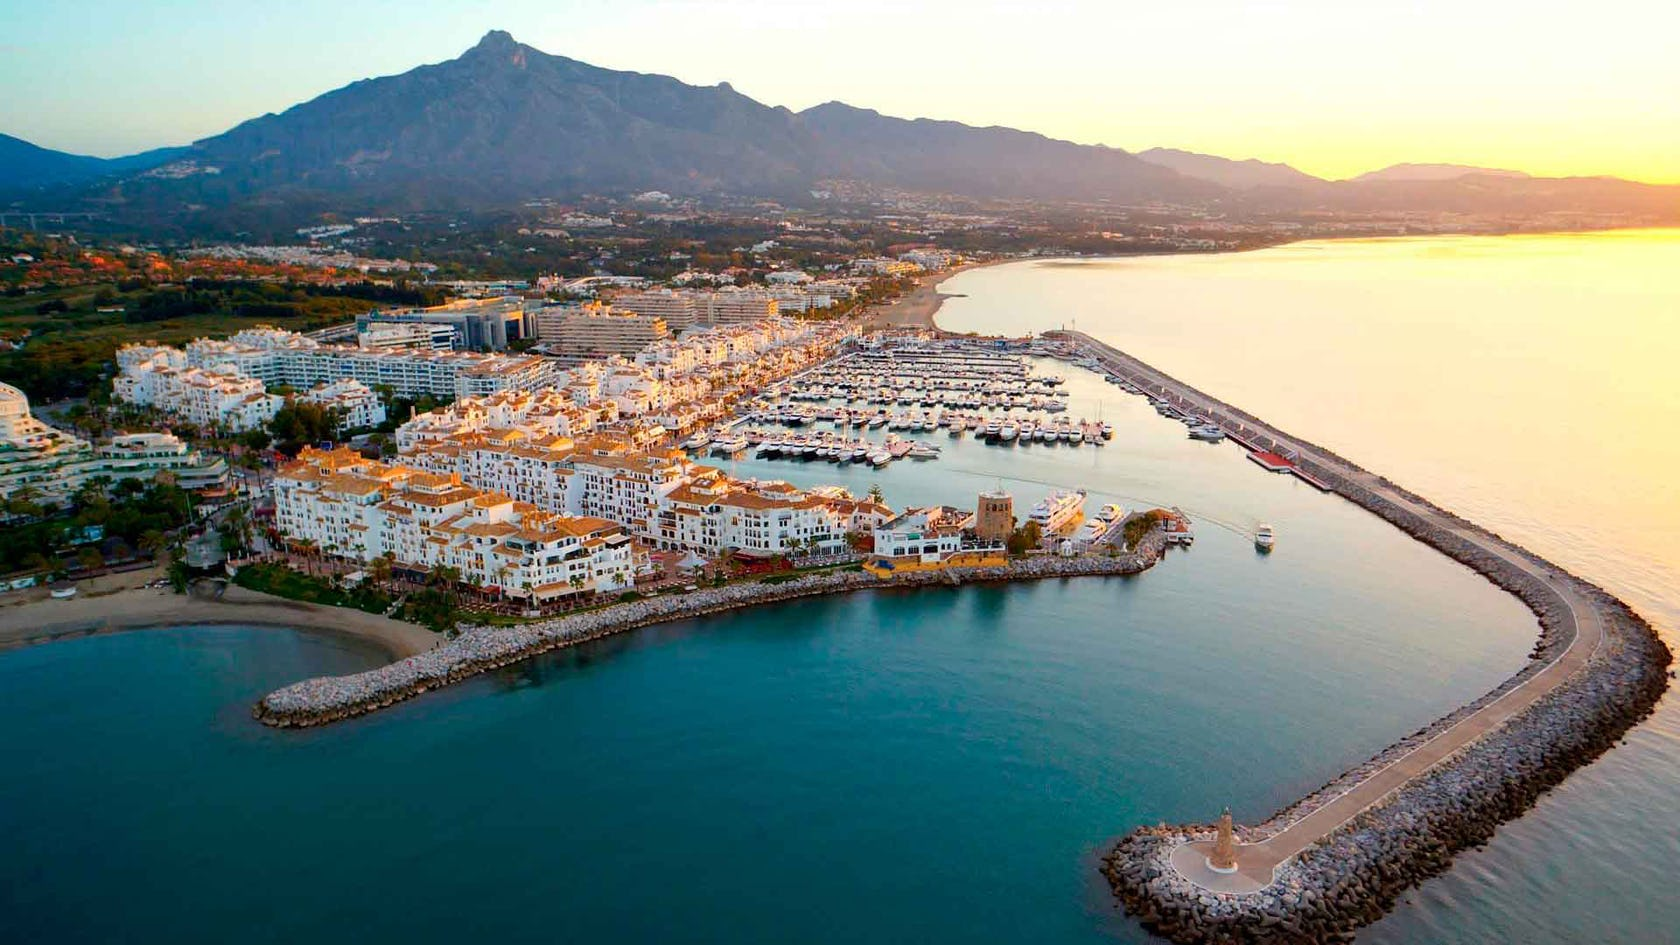 4 reasons to invest in real estate in Marbella